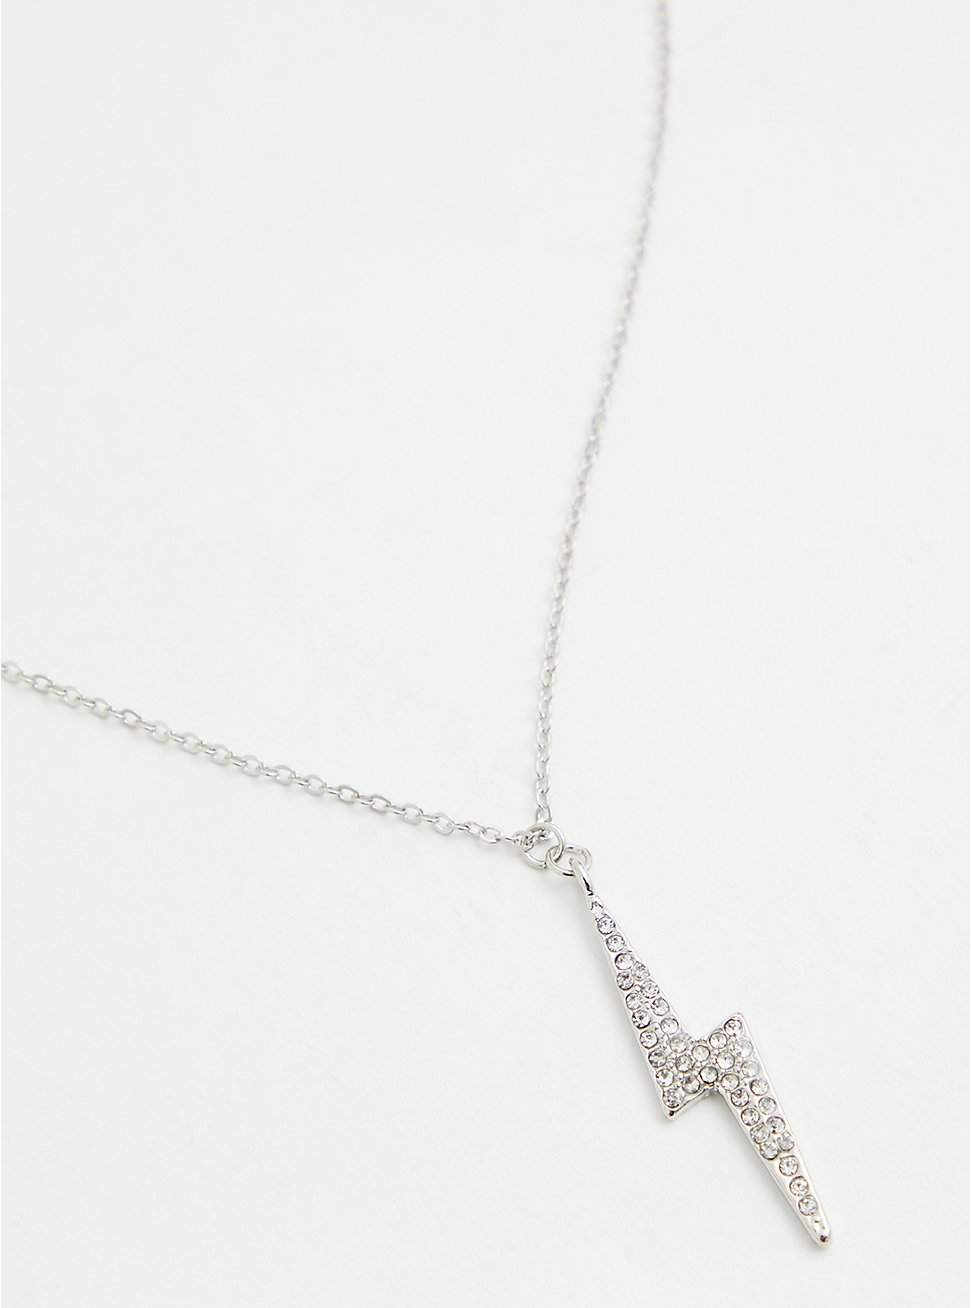 Silver-Tone Pave Lightning Bolt Necklace, , hi-res